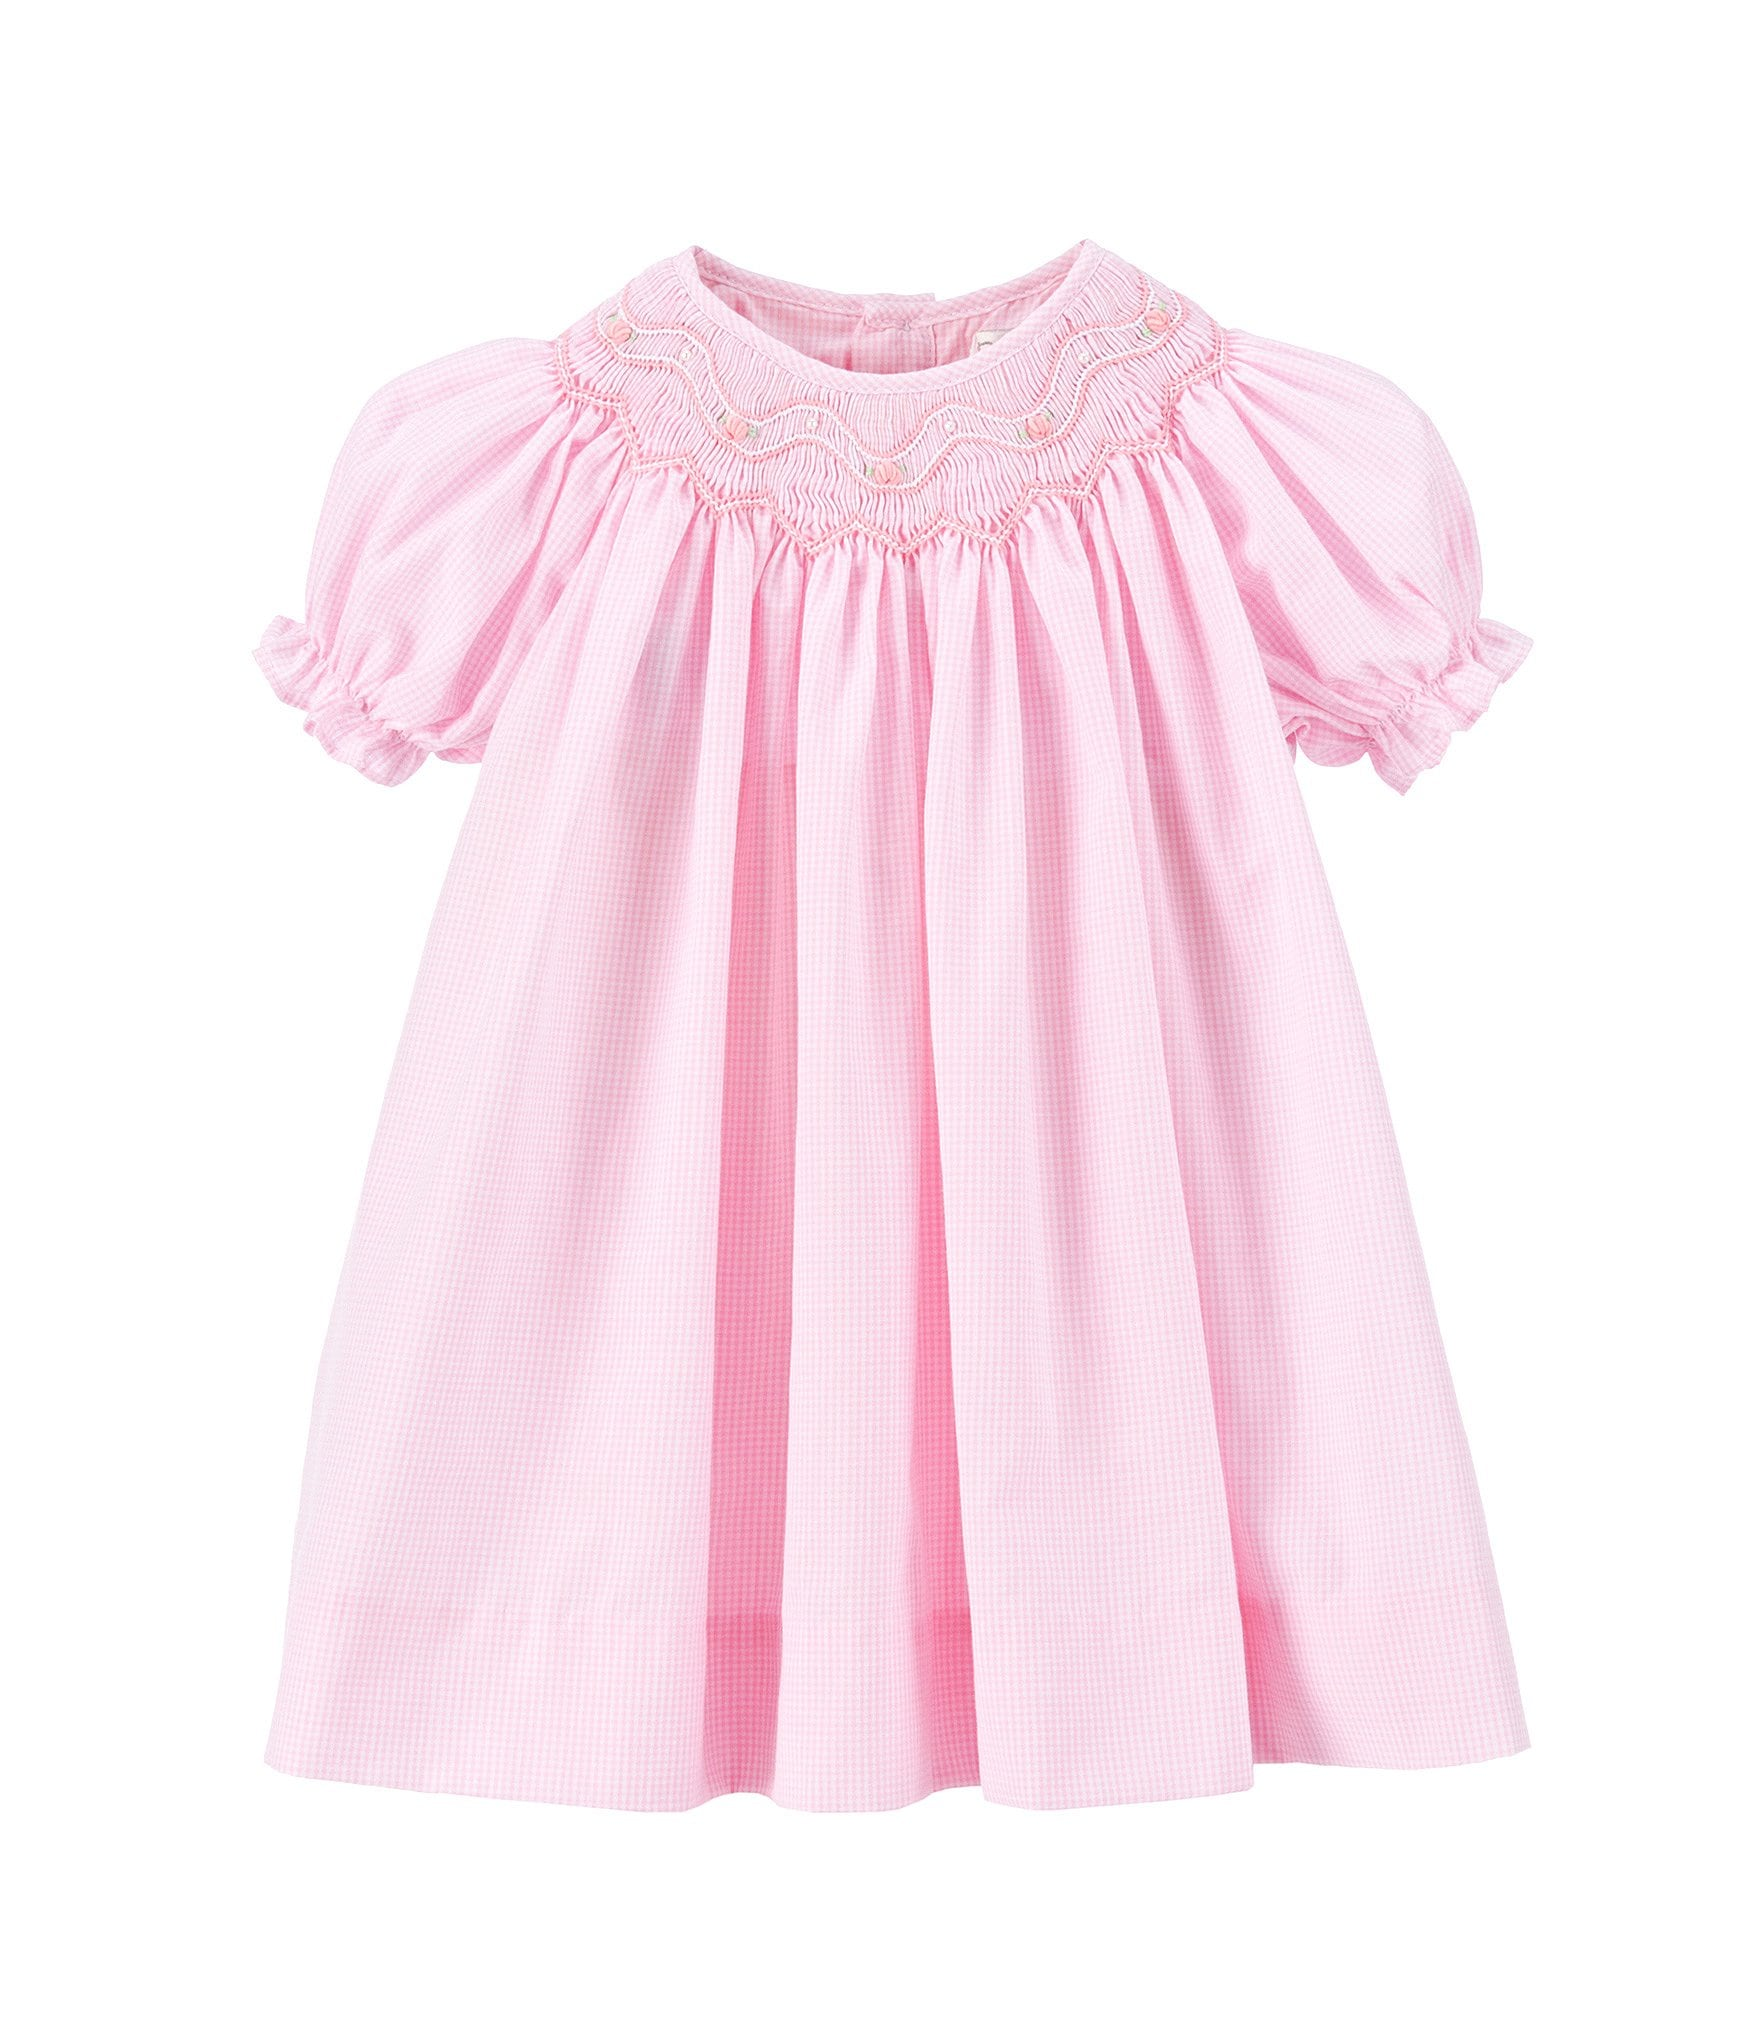 Girl's smocked dresses, 12M clothing, size 12 month smocked clothes, cotton dresses, baby girl's basic clothing, high end appliqued outfits, and 12 M boutique baby girl's clothes. Size 12M Christmas and Easter dresses, birthday outfits, and trendy girl's clothing.